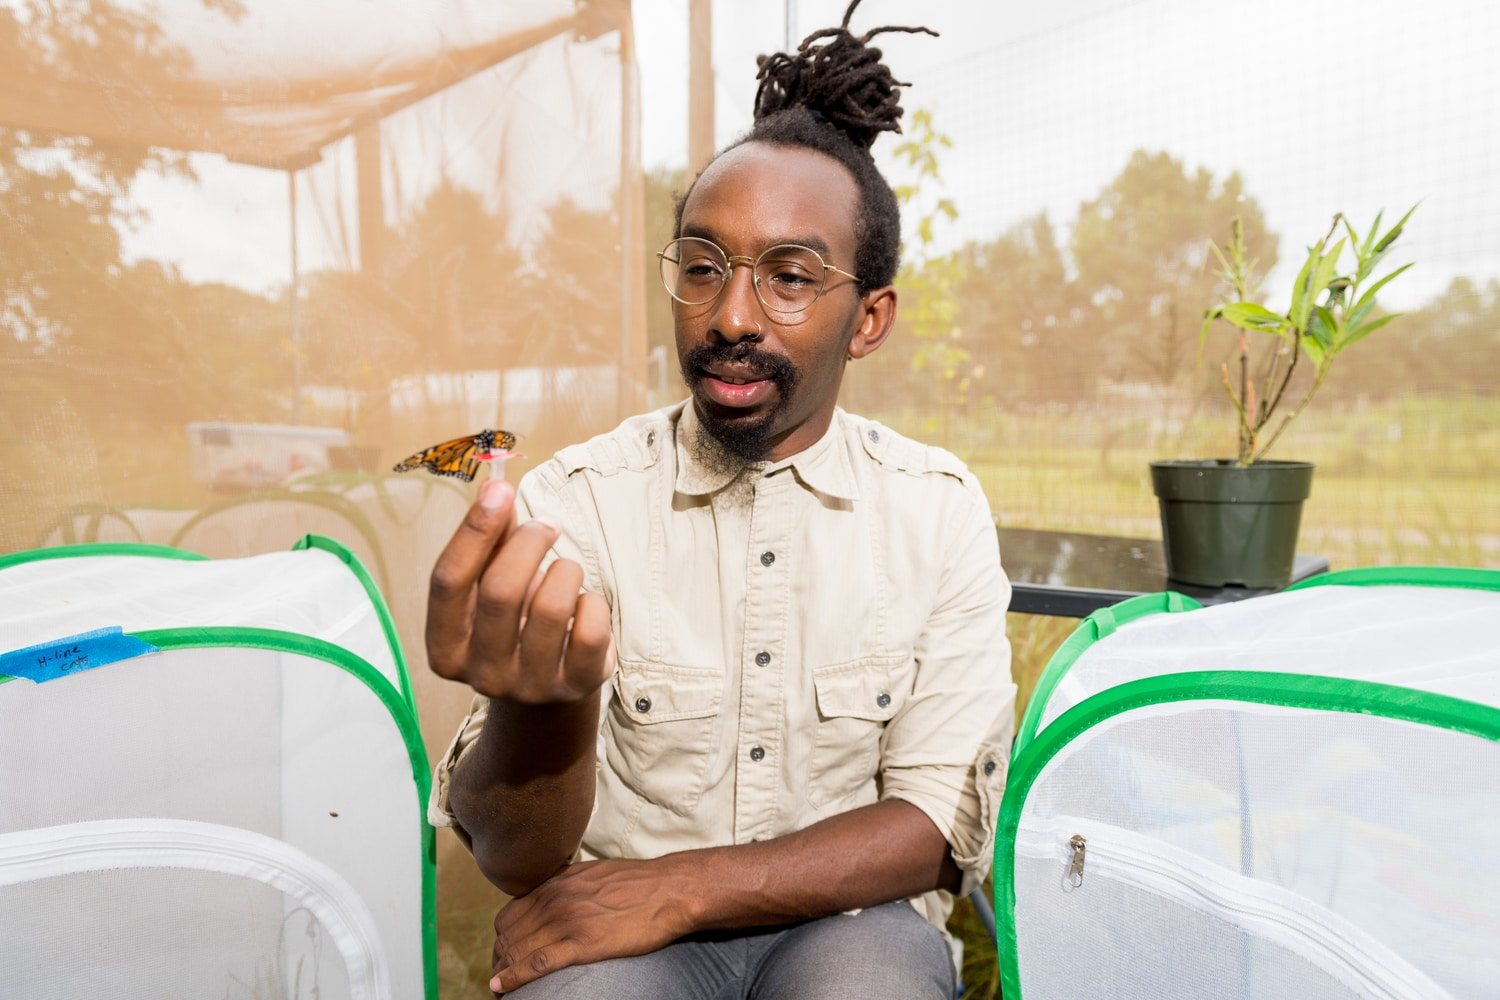 U-M biologist D. André Green holds a monarch butterfly in an outdoor insectary at the university's Matthaei Botanical Gardens. Green studies monarch migration and the internal timer that tells the butterflies it's time to wake from winter dormancy and prepare for their springtime journey northward. Image credit: Daryl Marshke, Michigan Photography